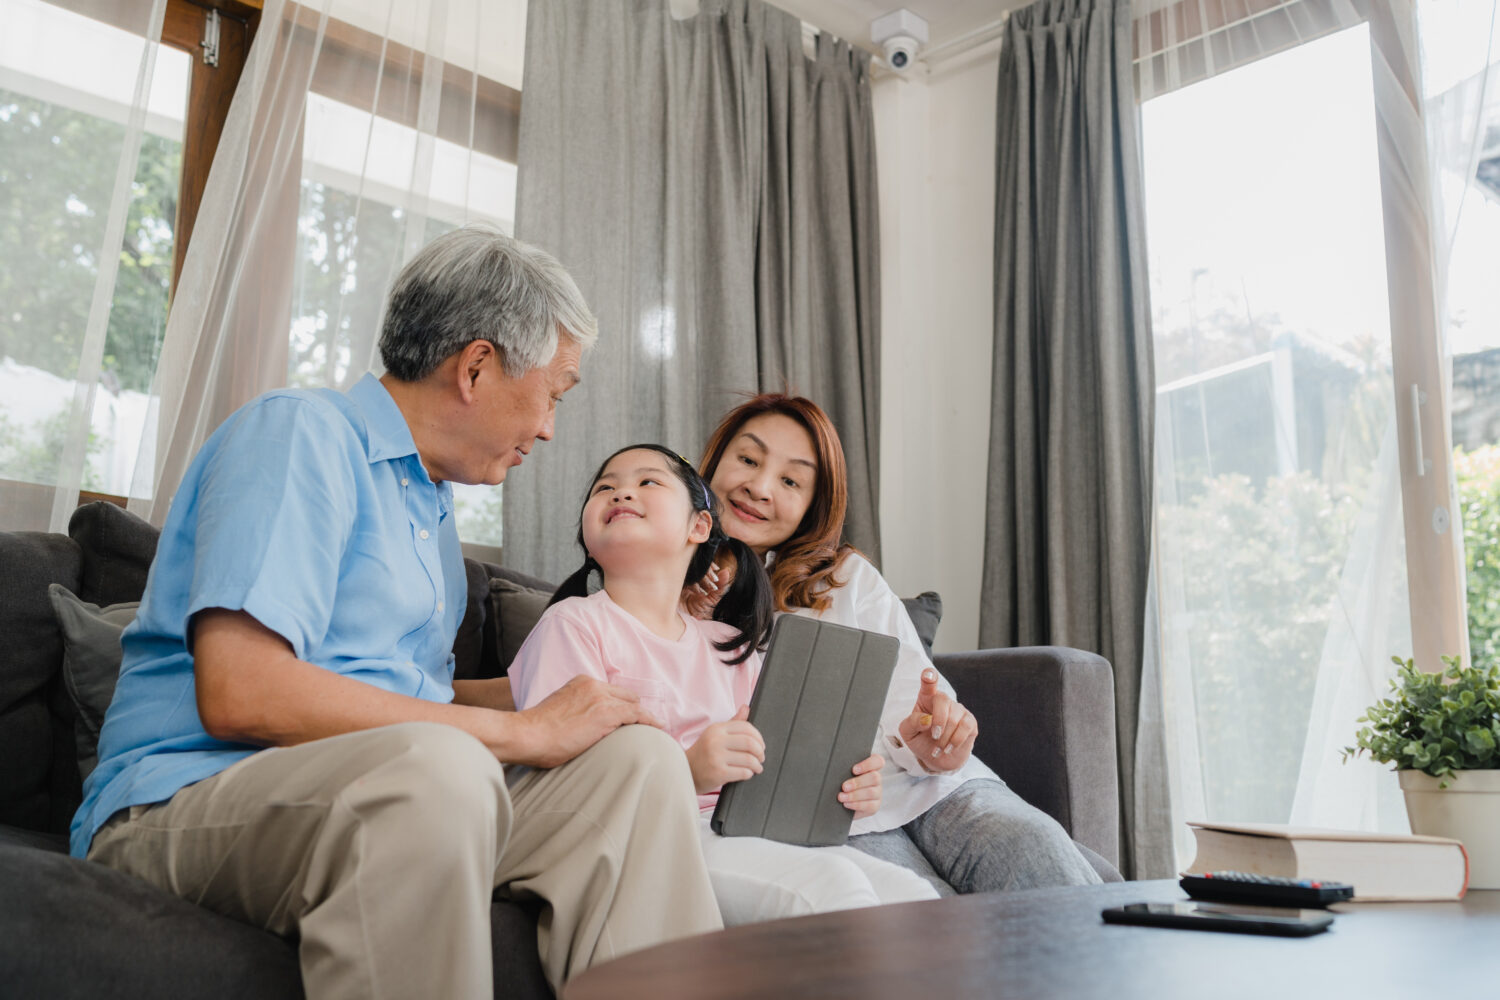 asian grandparents browsing social media with their young granddaughter